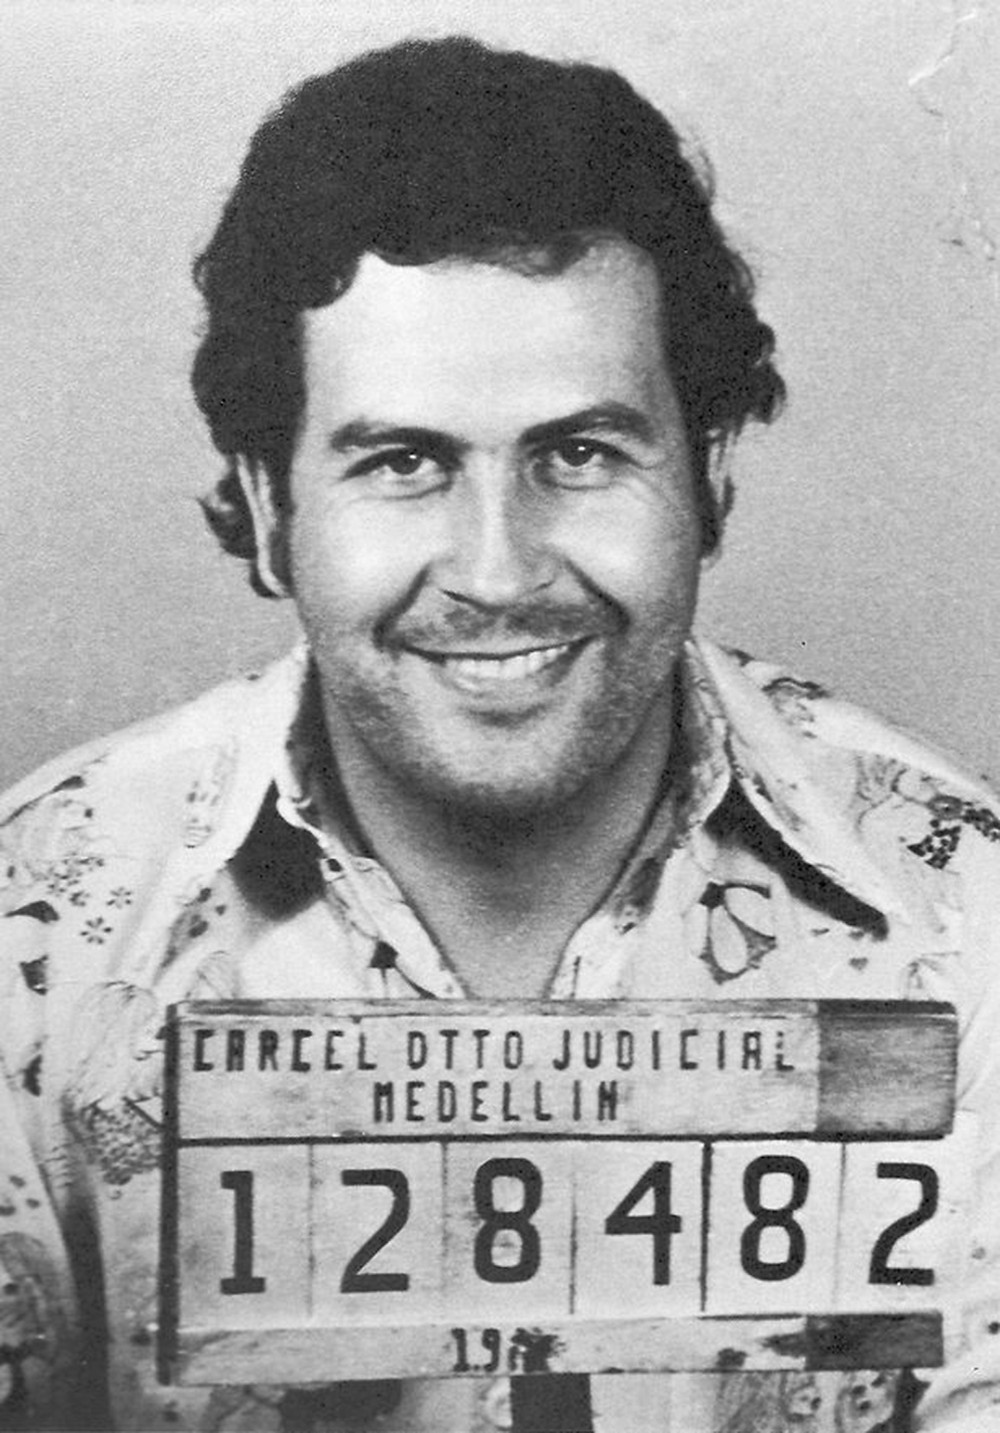 This image shows the notorious drug lord pablo escobar